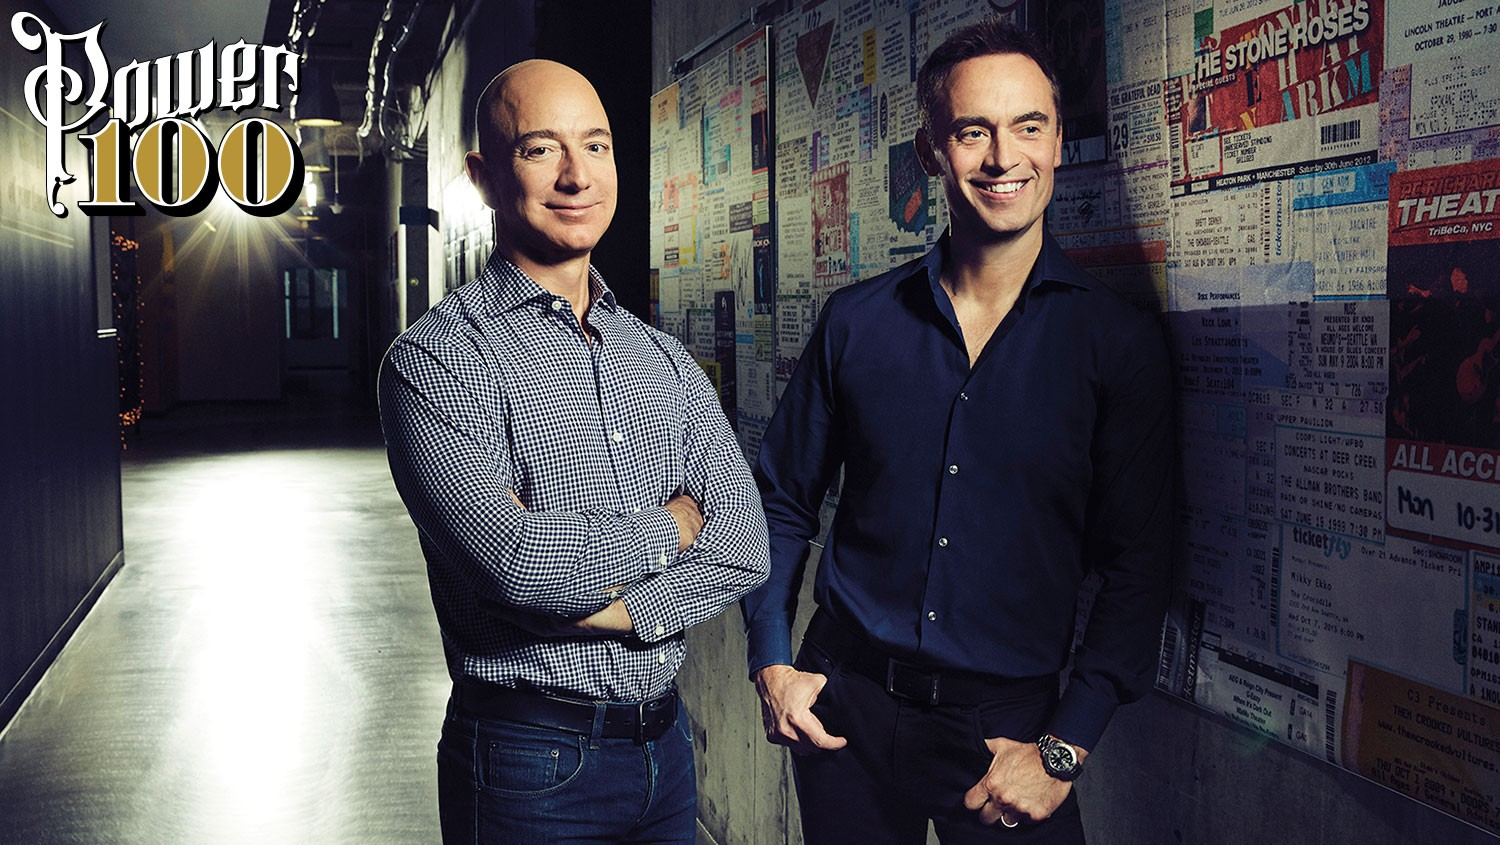 Jeff Bezos (left) and Steve Boom photographed on Jan.20 at Amazon in Seattle.